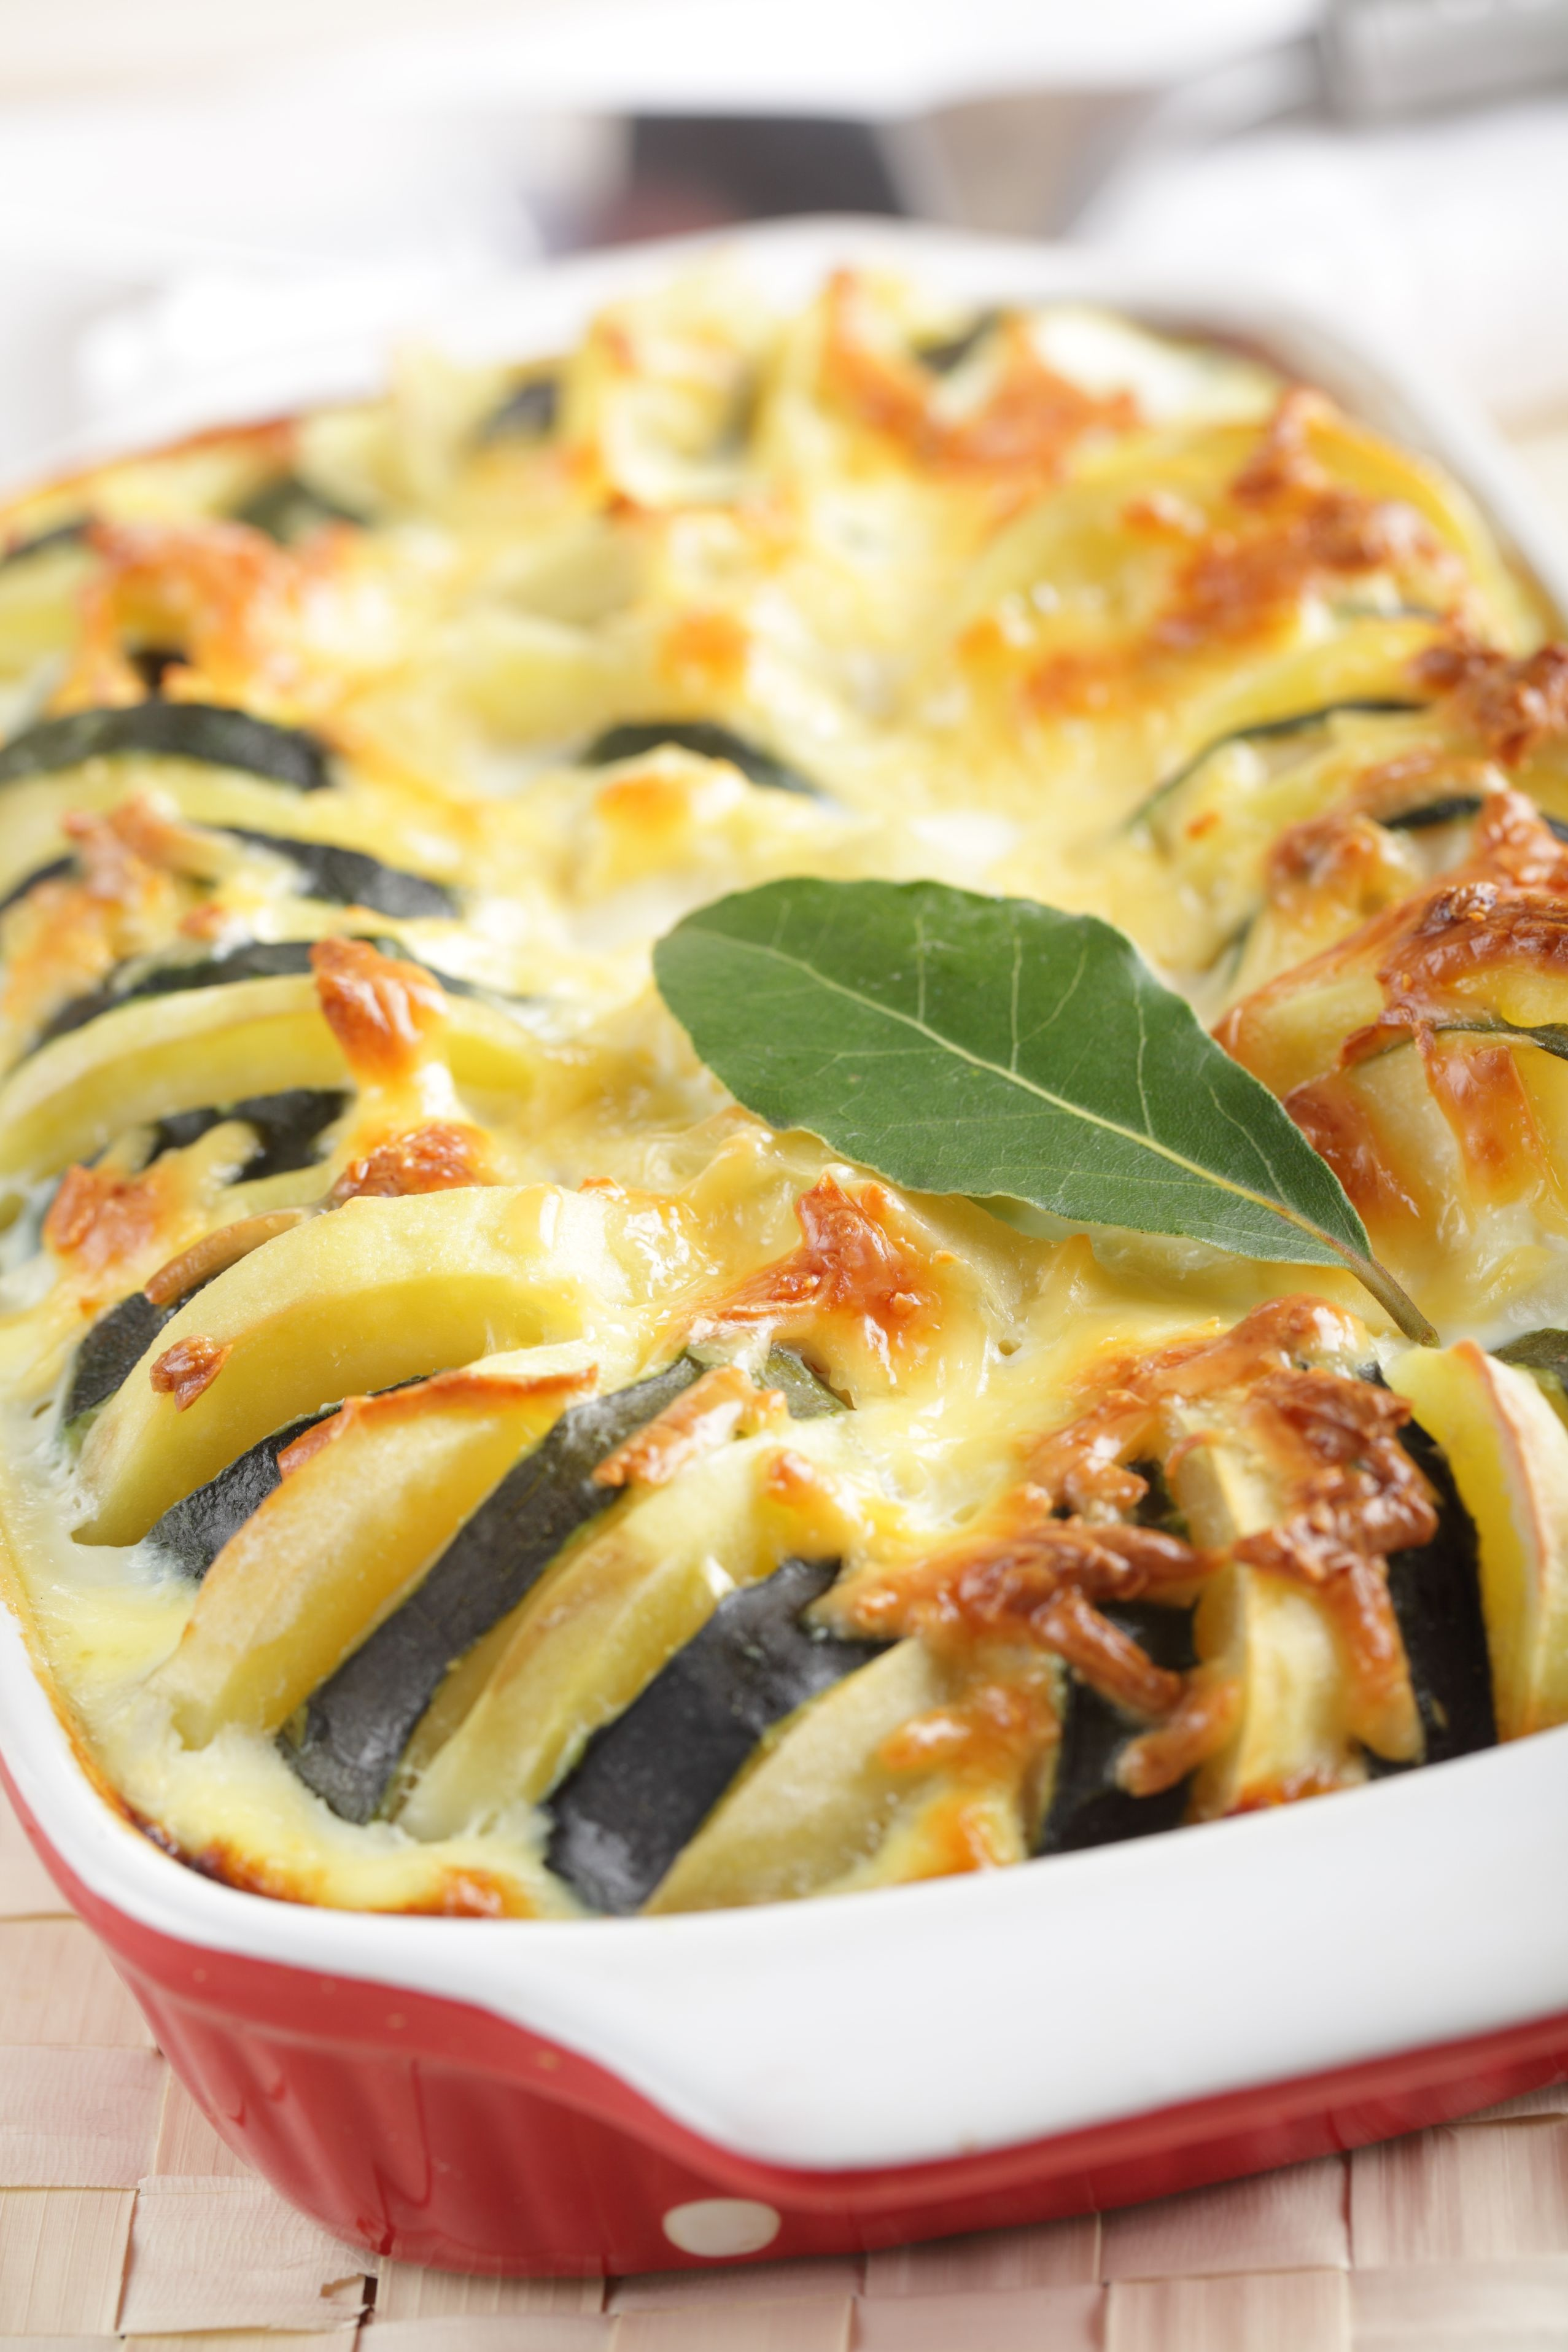 Casserole Recipe: Summer Vegetable Tian - 12 Tomatoes